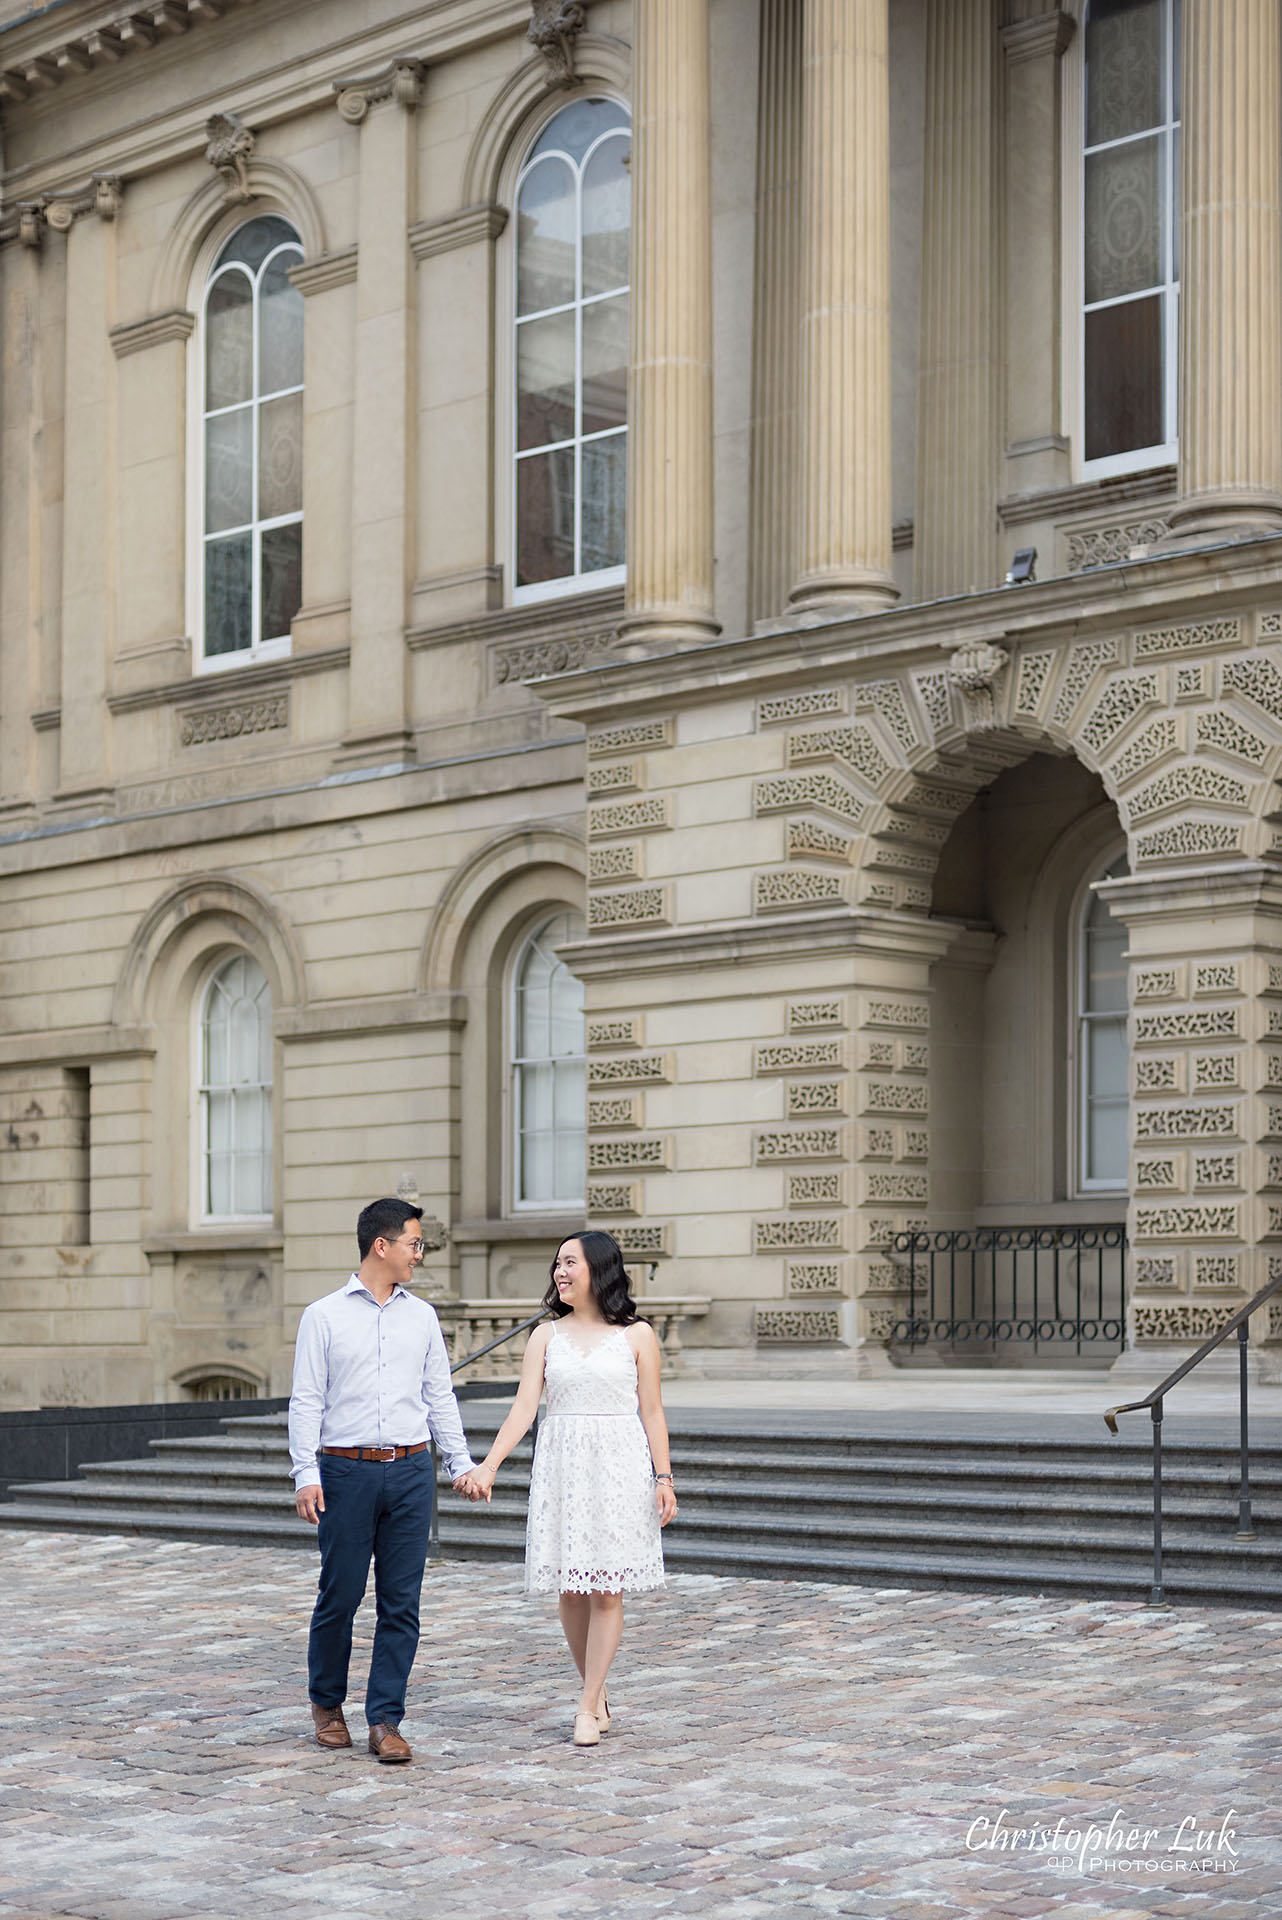 Christopher Luk Wedding Photographer Osgoode Hall Toronto Bride Groom Main Historic Building Front Cobblestone Holding Hands Walking Together Portrait Christopher Luk Wedding Photographer Osgoode Hall Toronto Bride Groom Main Historic Building Front Cobblestone Holding Hands Walking Together Looking at Each Other Portrait Natural Candid Photojournalistic